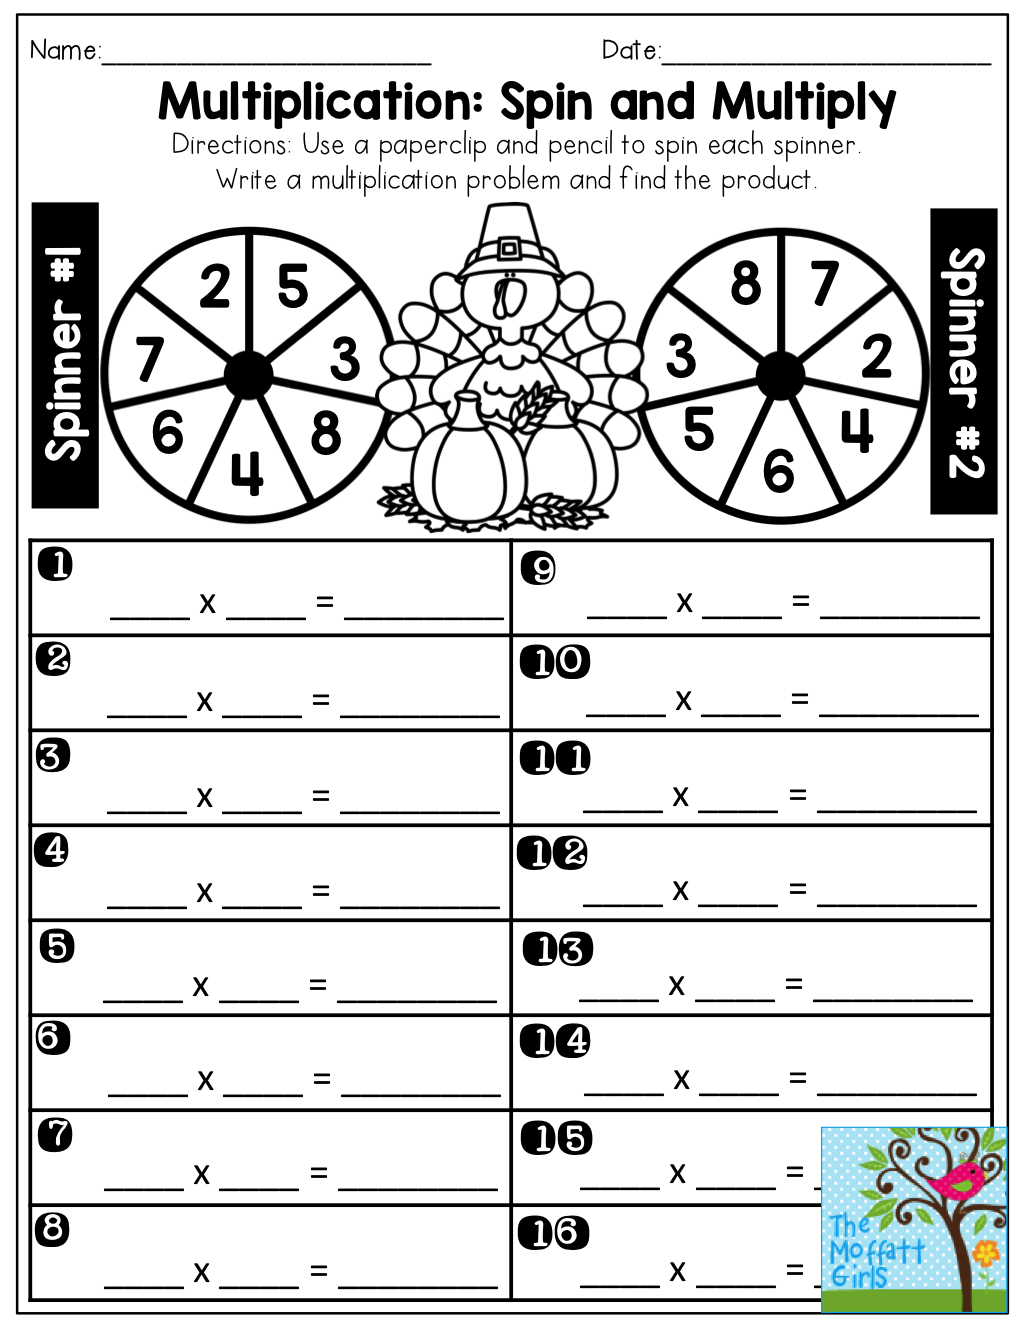 Multiplication Spin And Multiply 2 8 So Much Fun When You Can Make A Game Out Of Learni Multiplication Math Activities Elementary Common Core Math Fractions